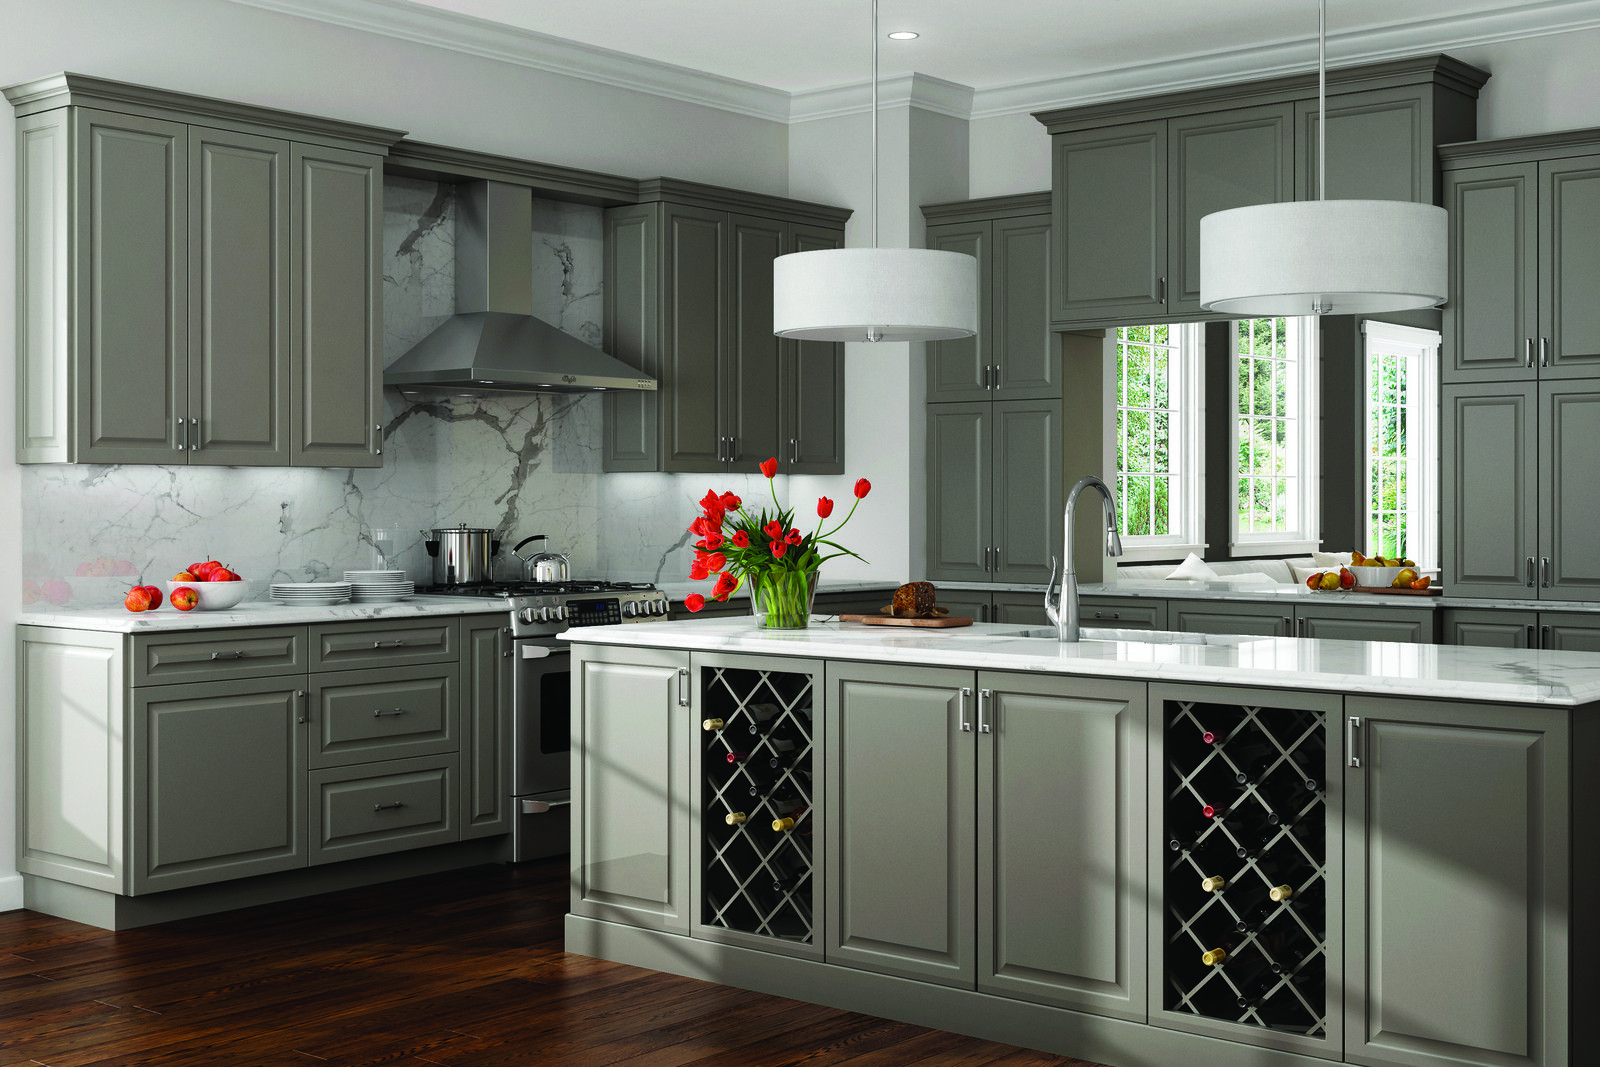 Kitchen Gallery Kitchen Backsplash Trends Kitchen Remodel Kitchen Cabinet Design